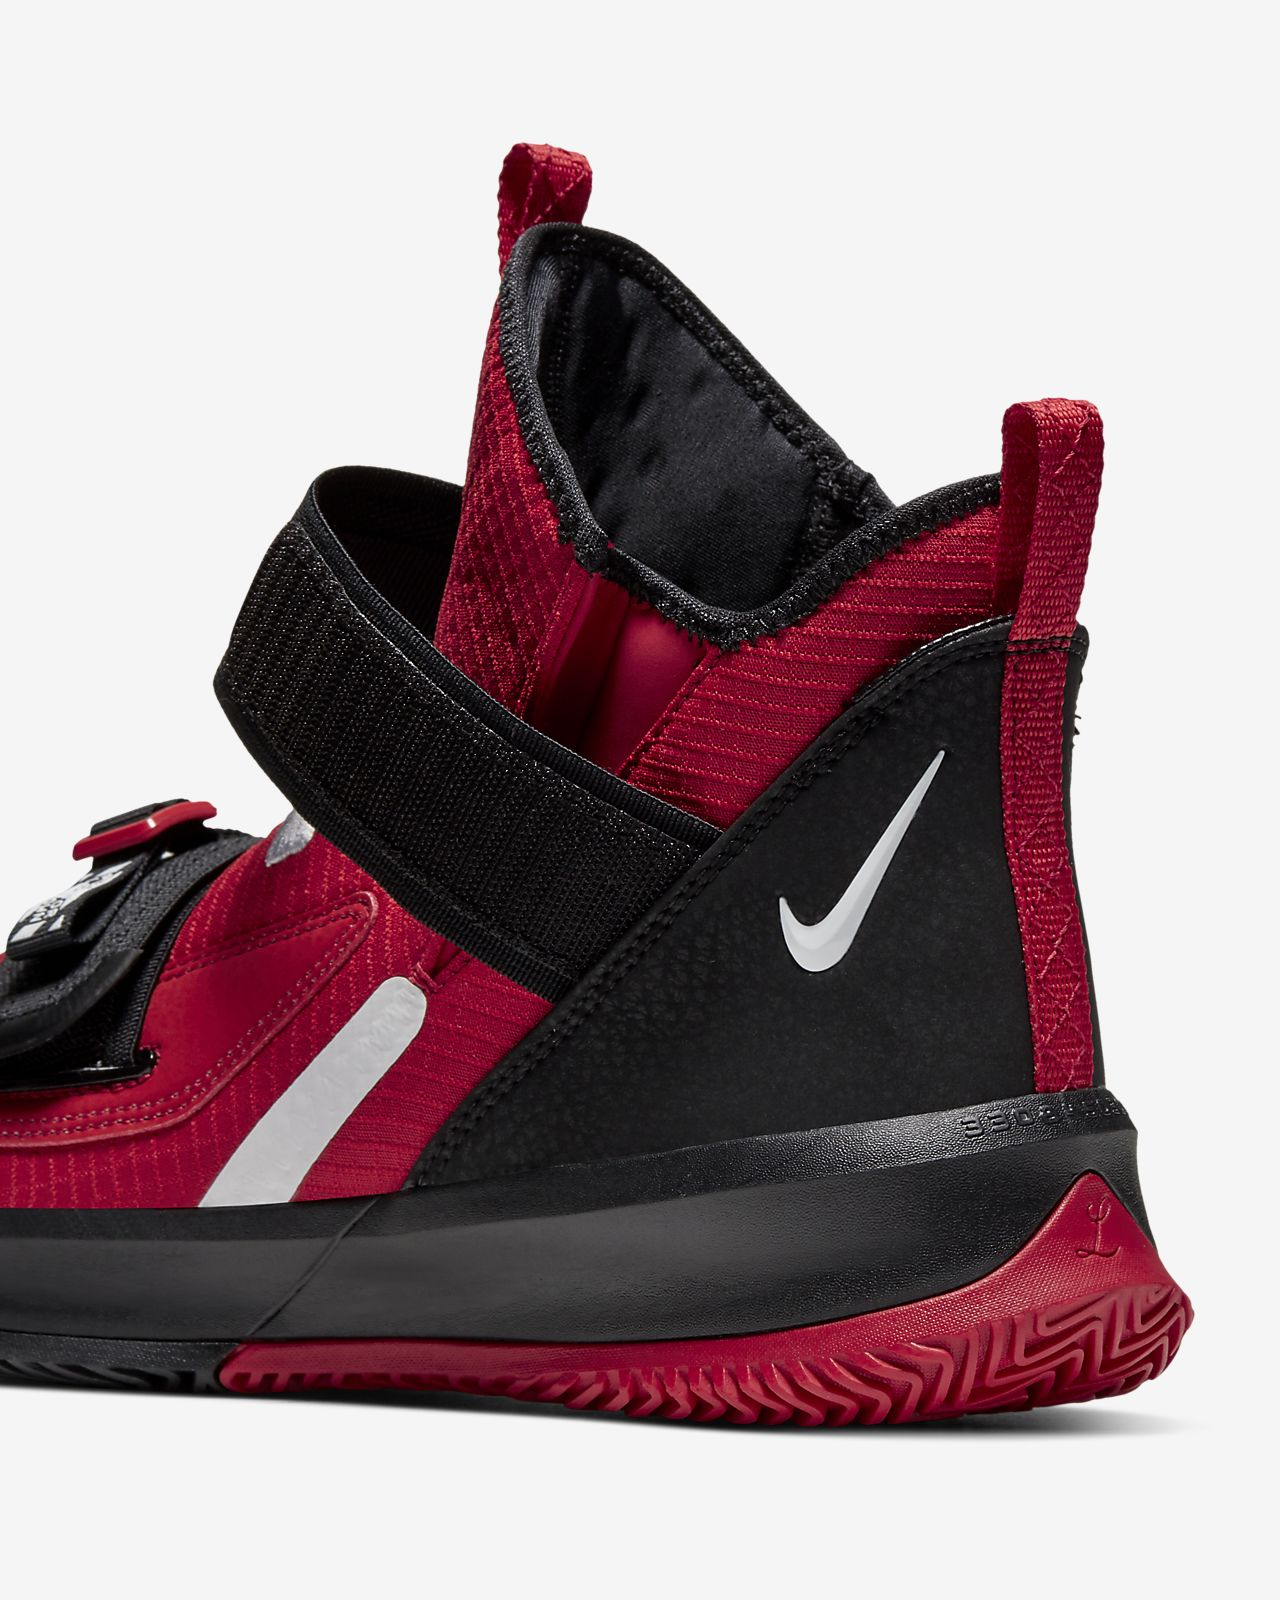 2019 New Release Nike Lebron 13 Gym Red Black White Men Basketball Shoes